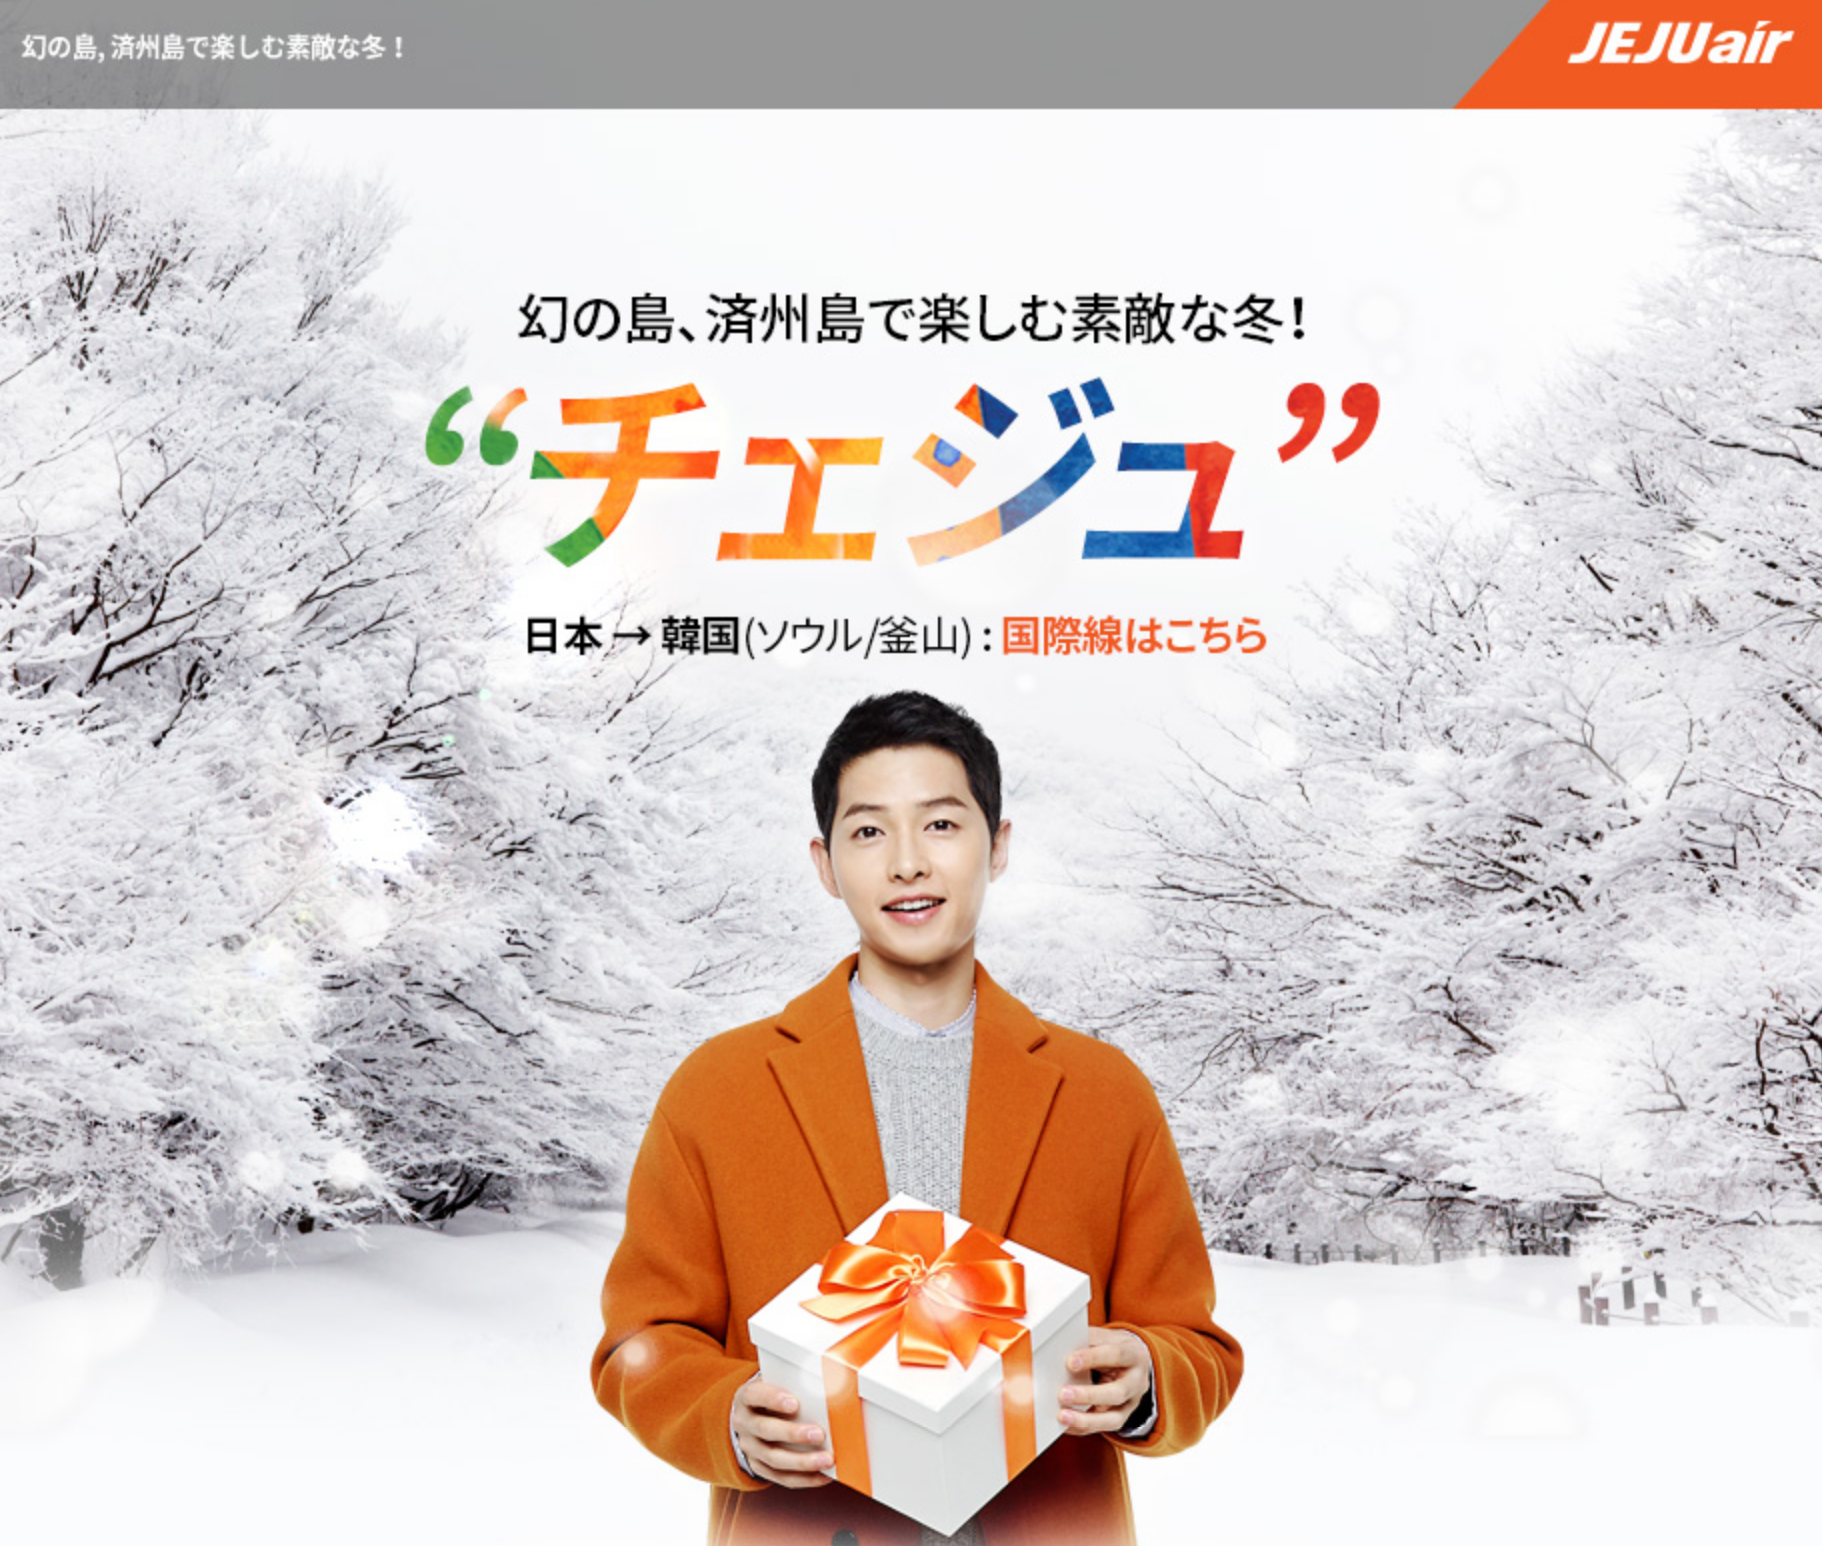 jejuairsale161210.png